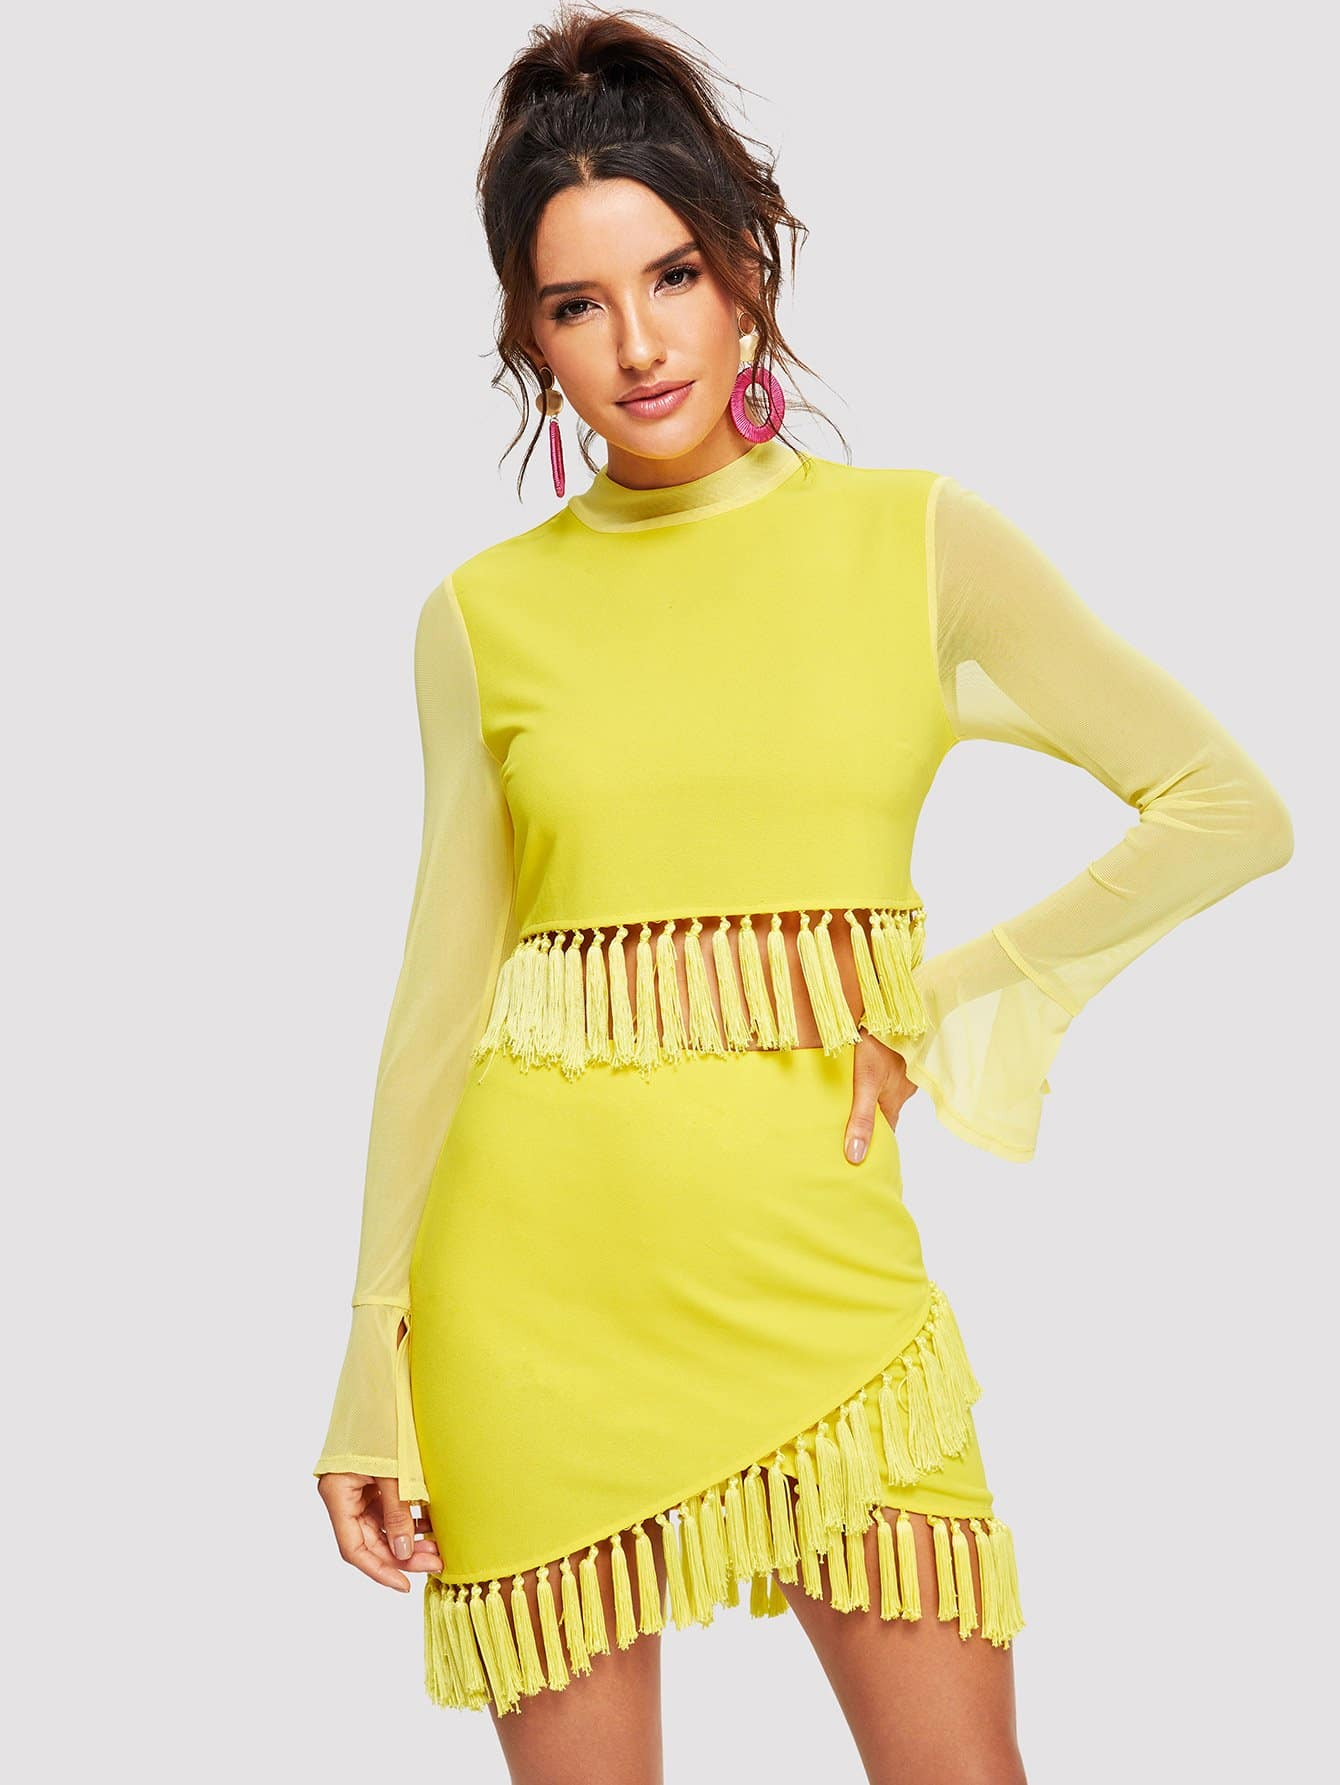 Tessel Mock Neck Bell Sleeve Solid Top